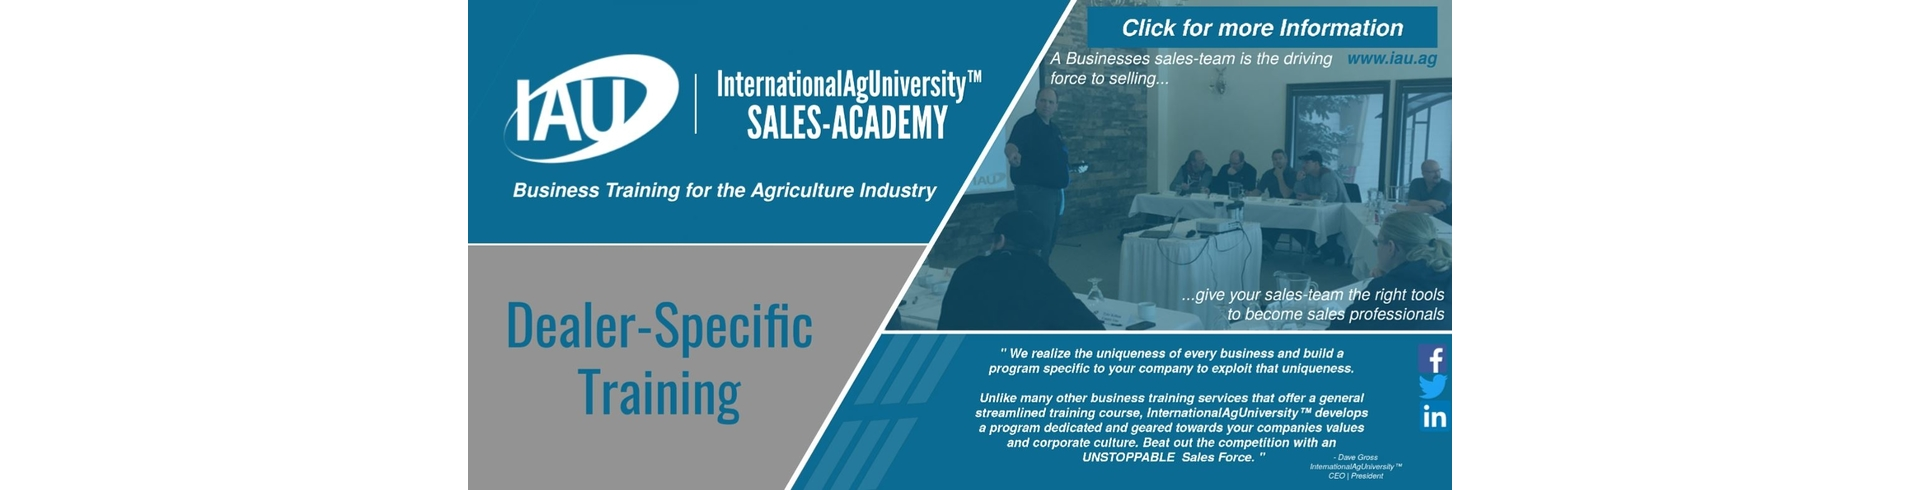 International Ag University - Link to their website.